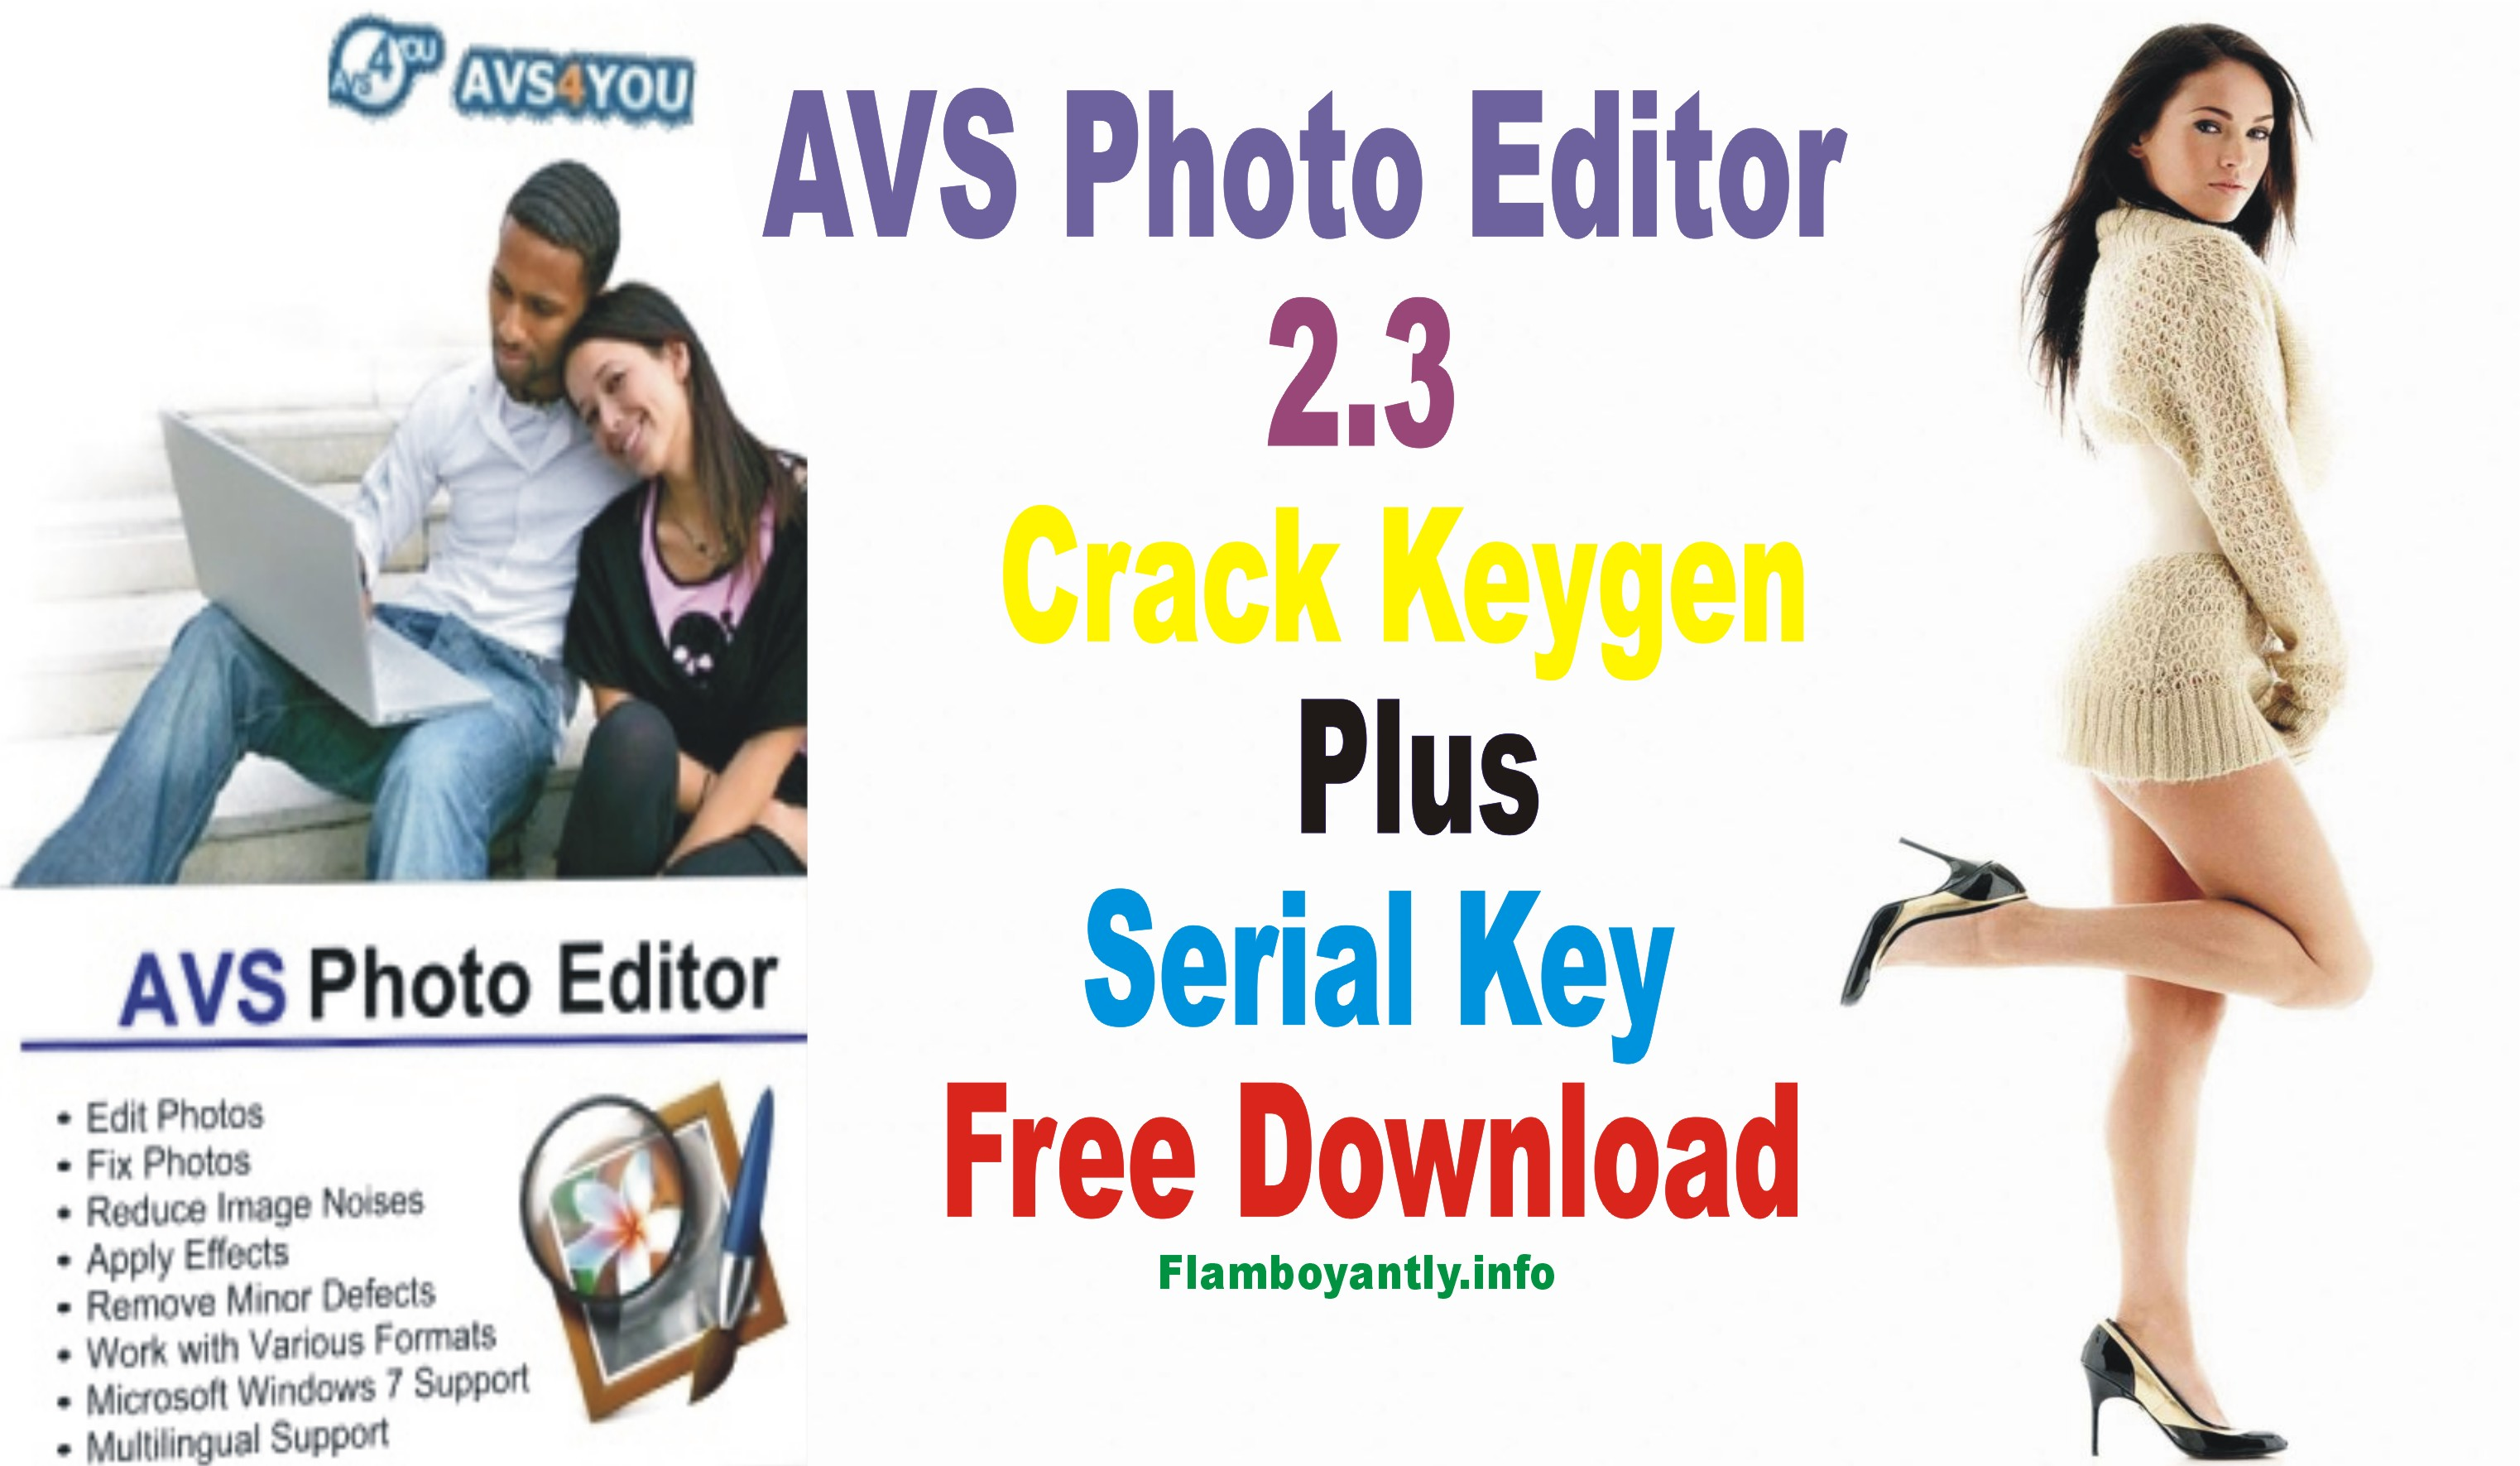 AVS Photo Editor 2.3 Crack Keygen Plus Serial Key Free Download